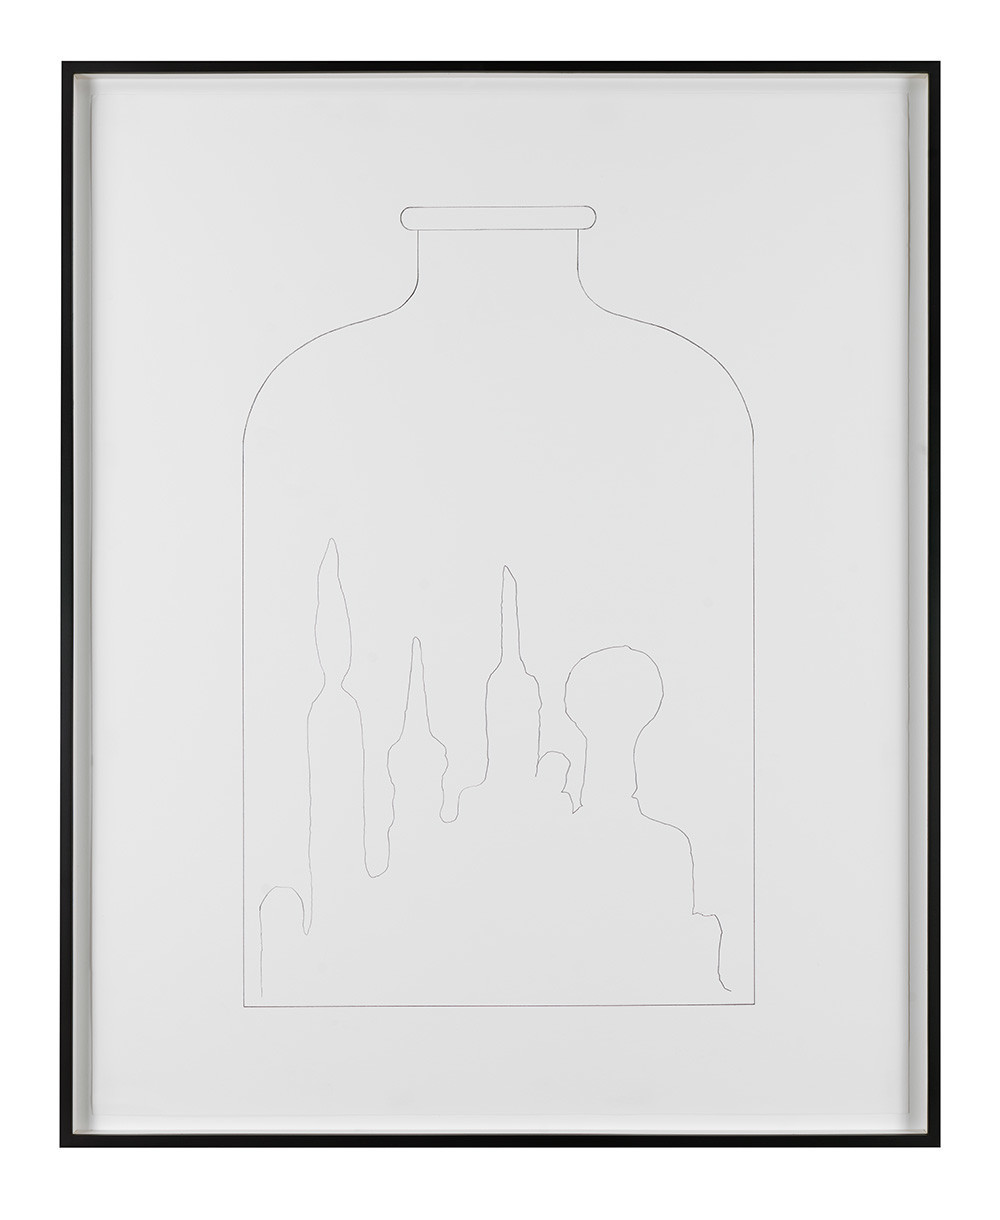 "Mike Kelley, ""No Title (Kandor bottle drawing),"" 2005, pencil."